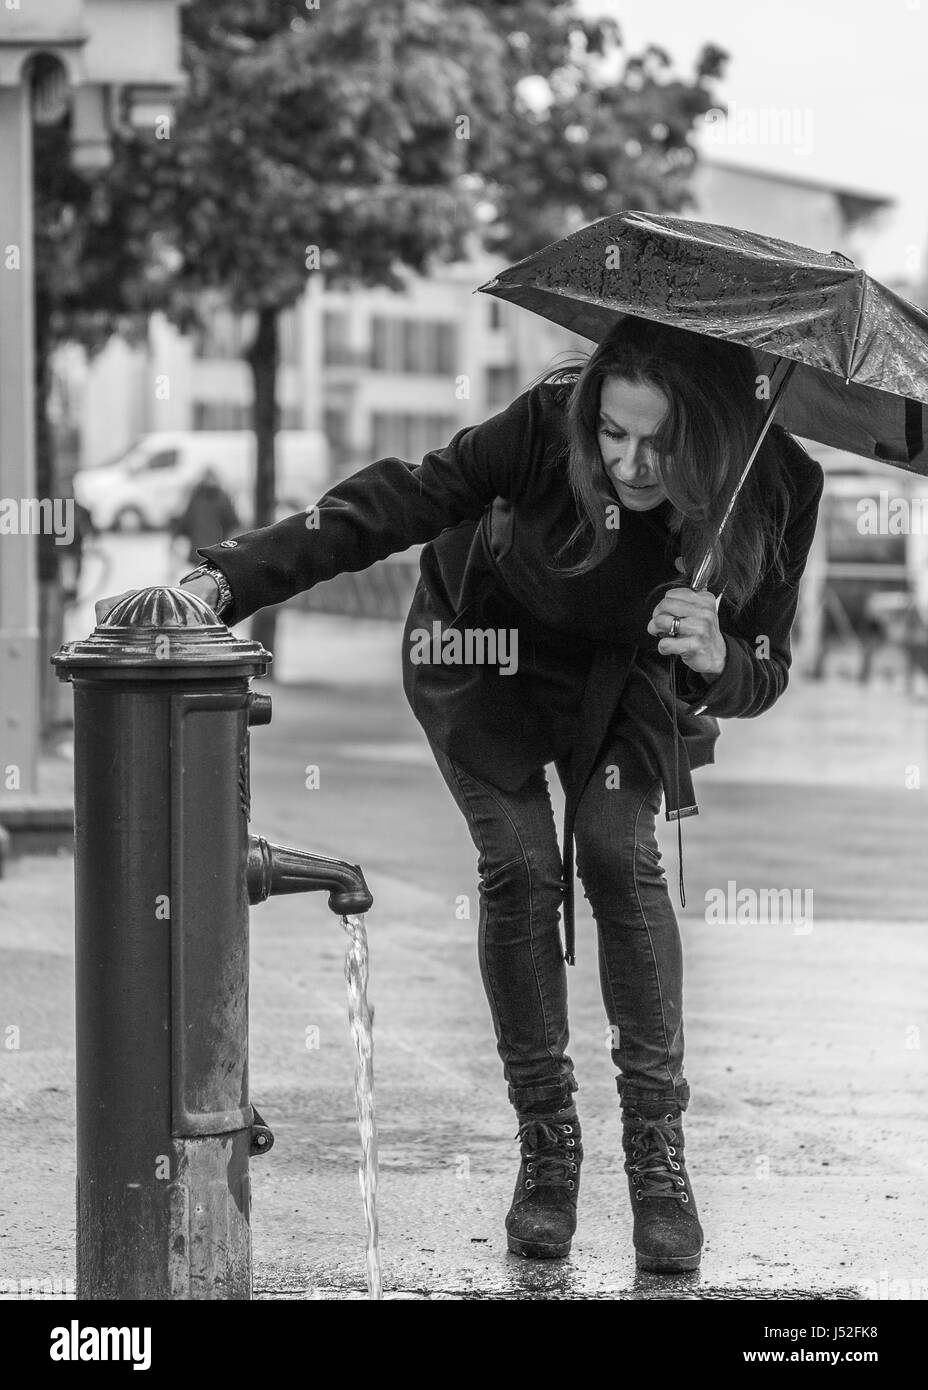 A rainy day in Annecy in black and white a female model with an umbrella by a water fountain - Stock Image